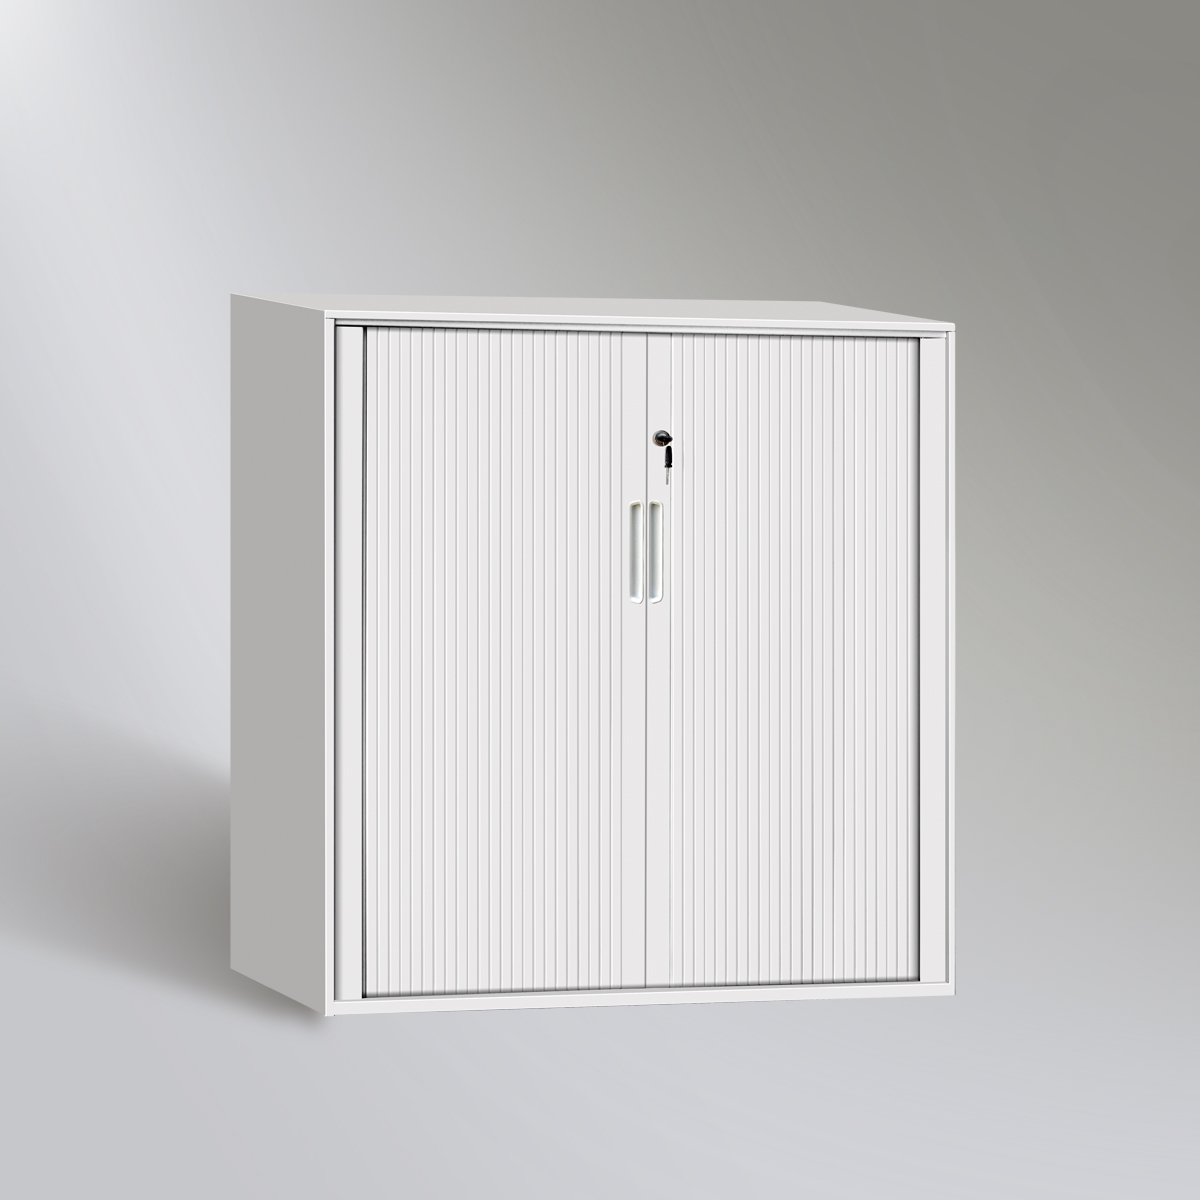 Roller Shutter Door Metal Lockable Storage Cabinet